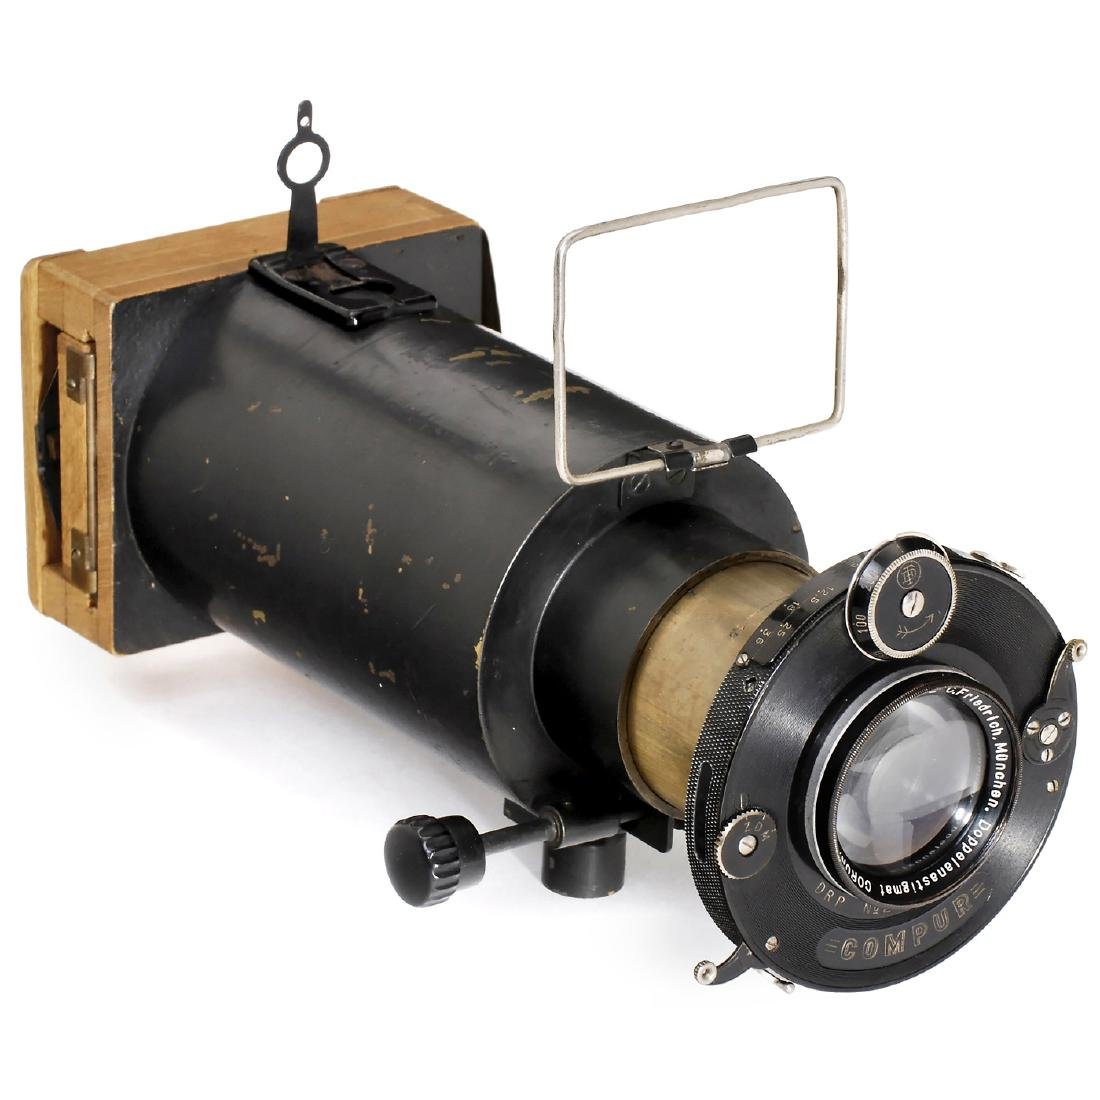 Telephoto Camera with Coronar 4,5/15 cm, c. 1925